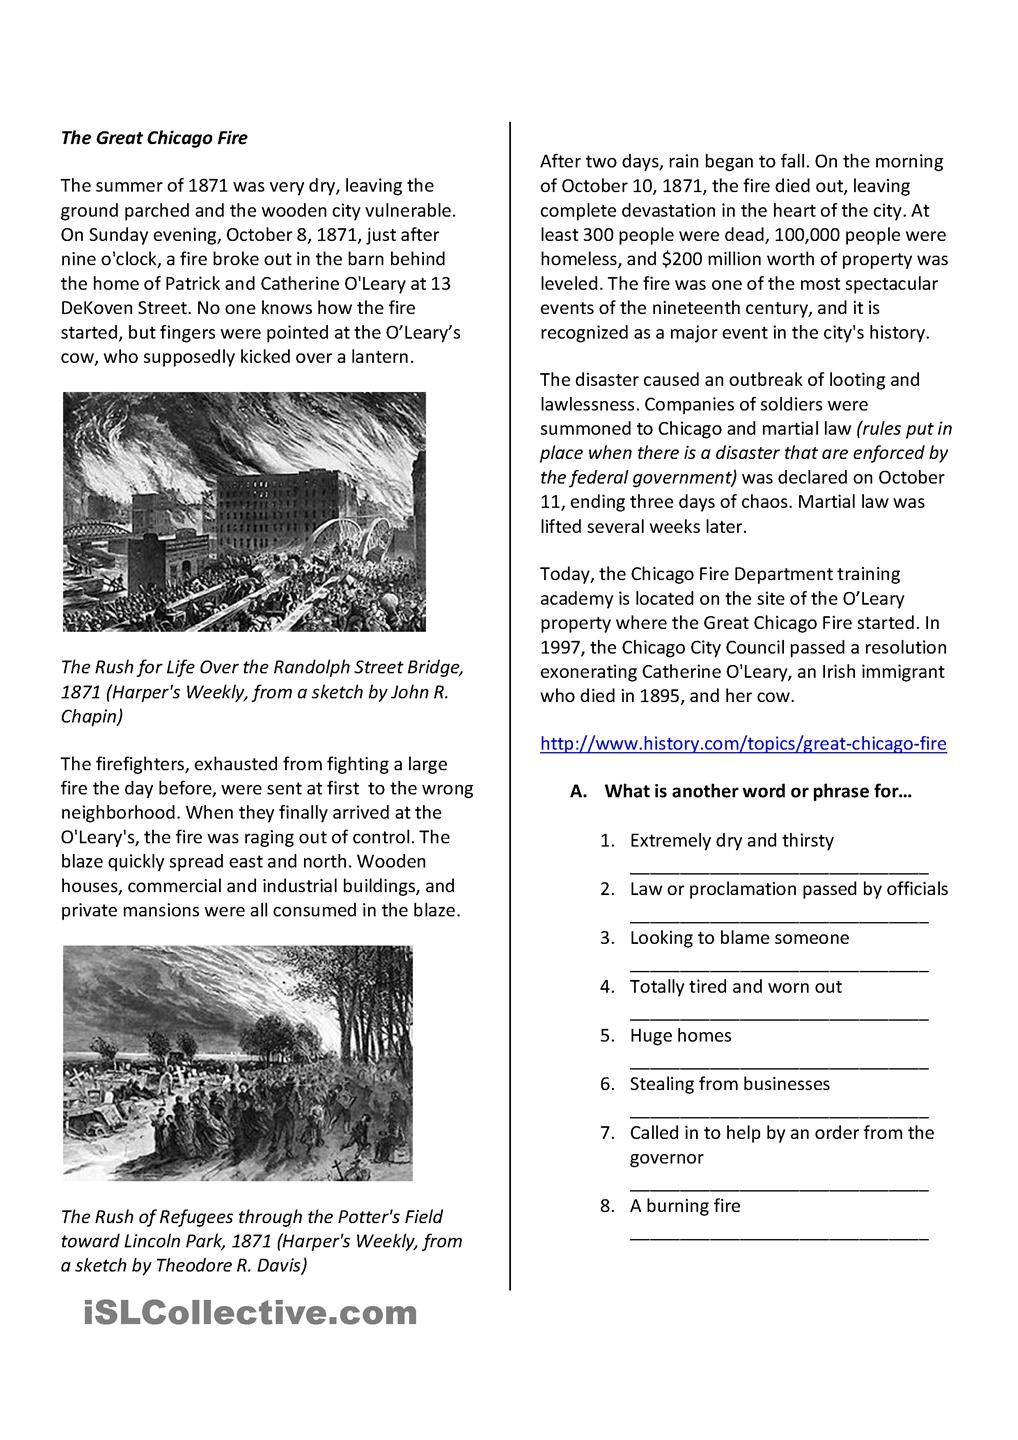 Reading Comprehension The Great Chicago Fire | Reading comprehension ...